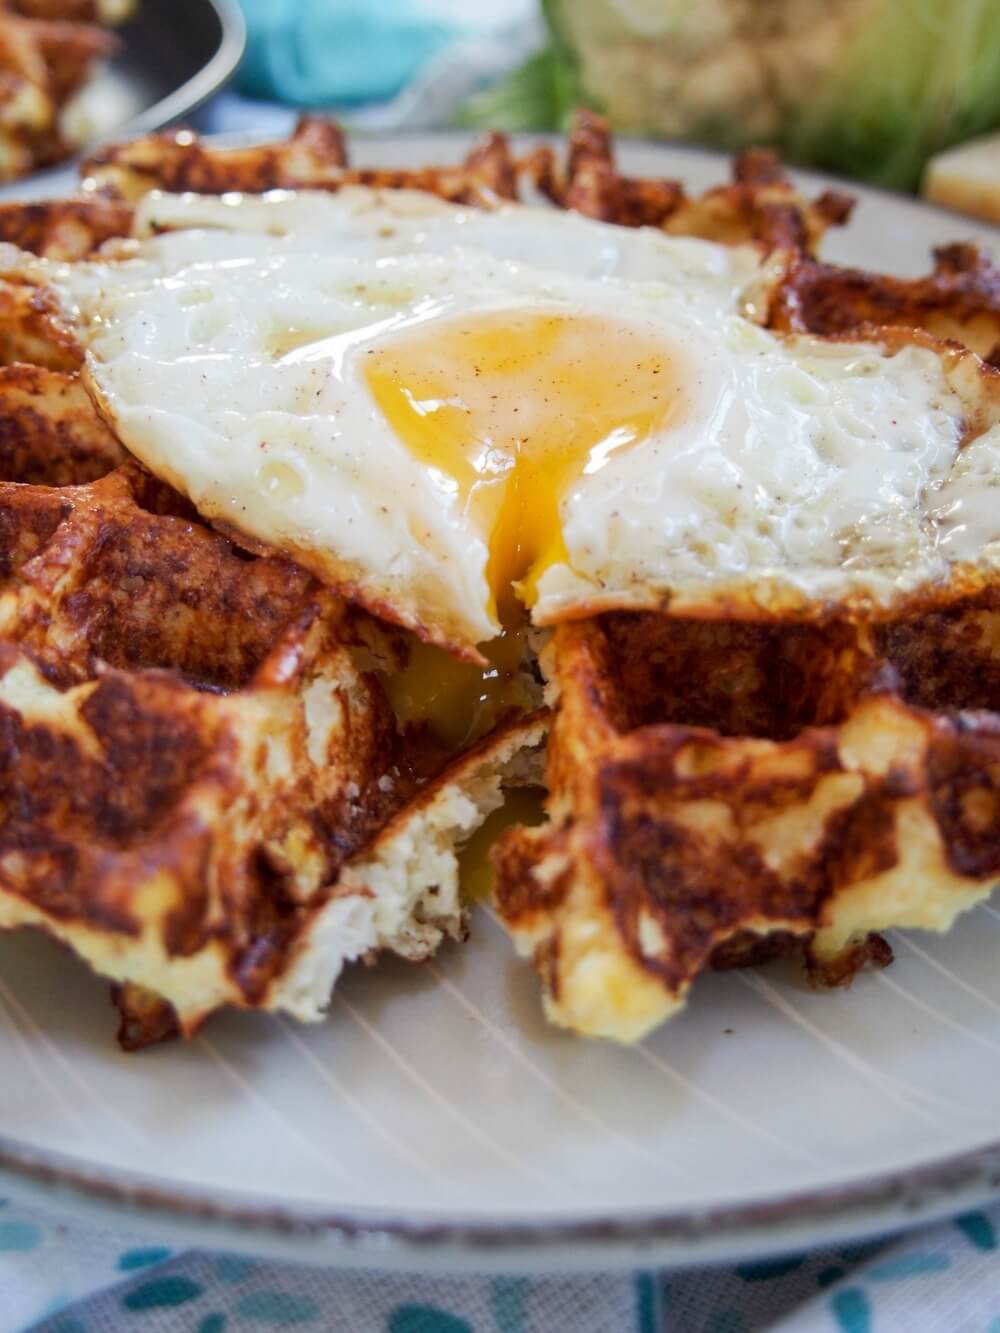 Cauliflower waffles with cut egg